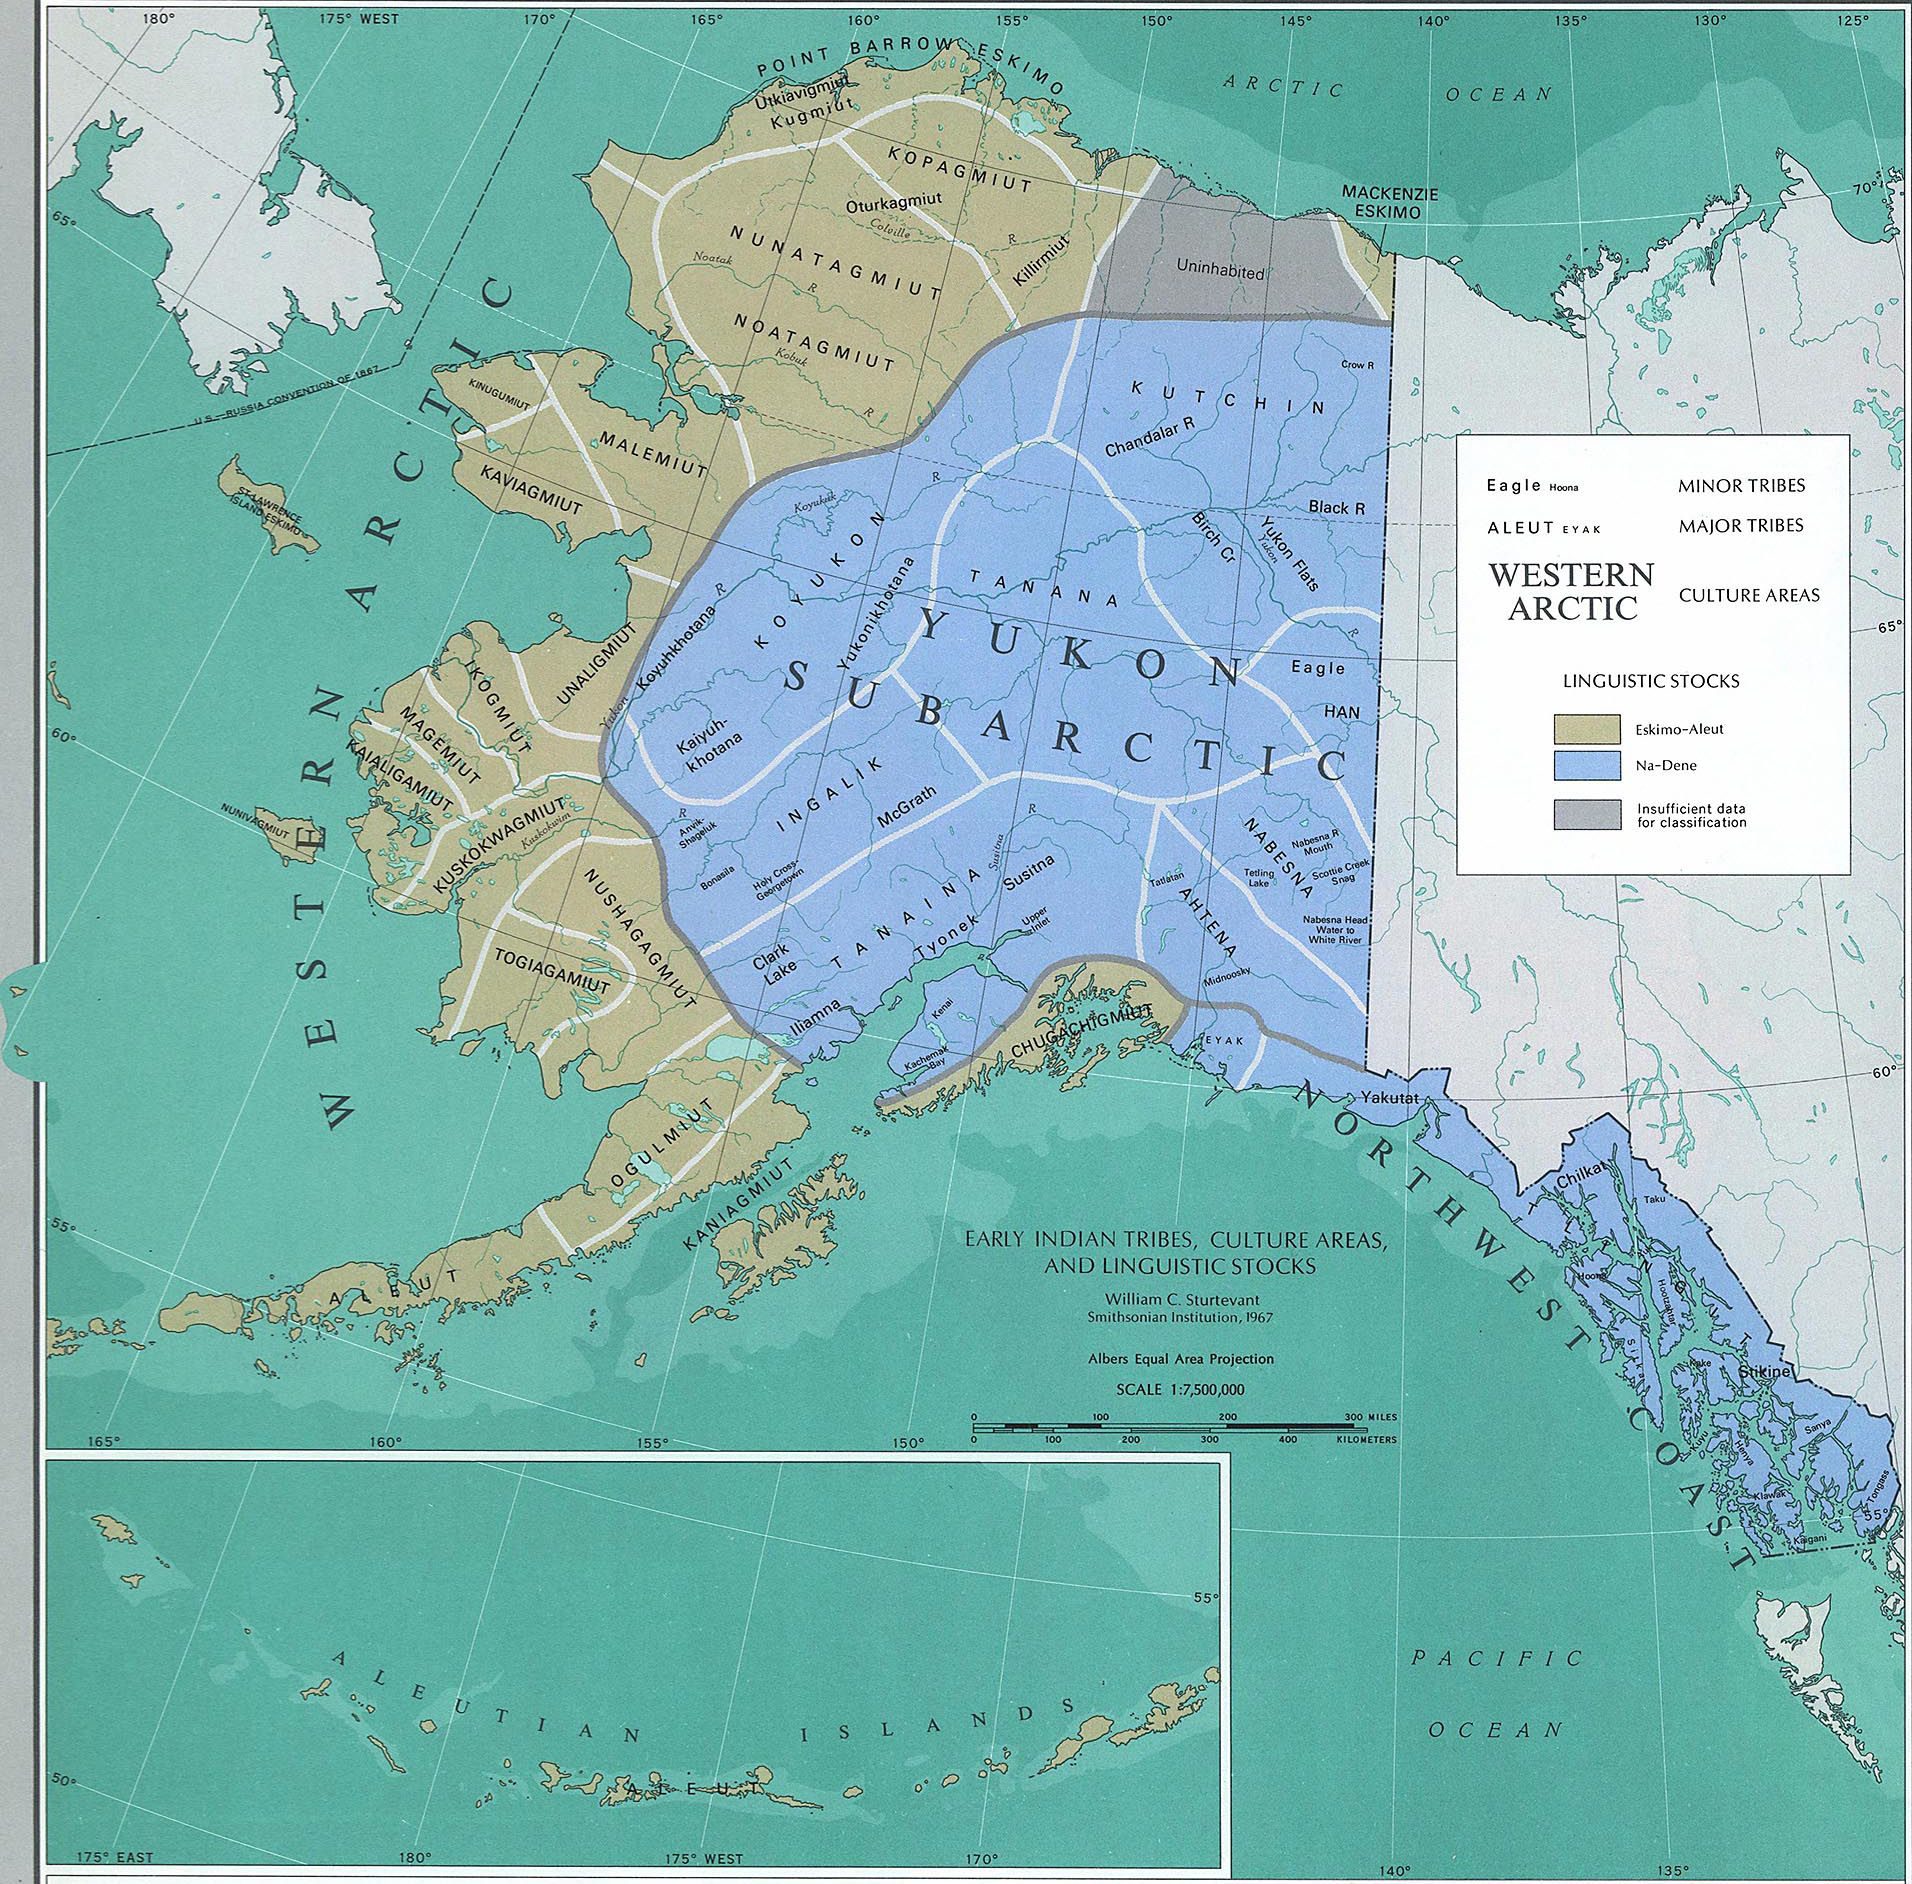 Map of Alaska Early Indian Tribes Culture Areas and Linguistic